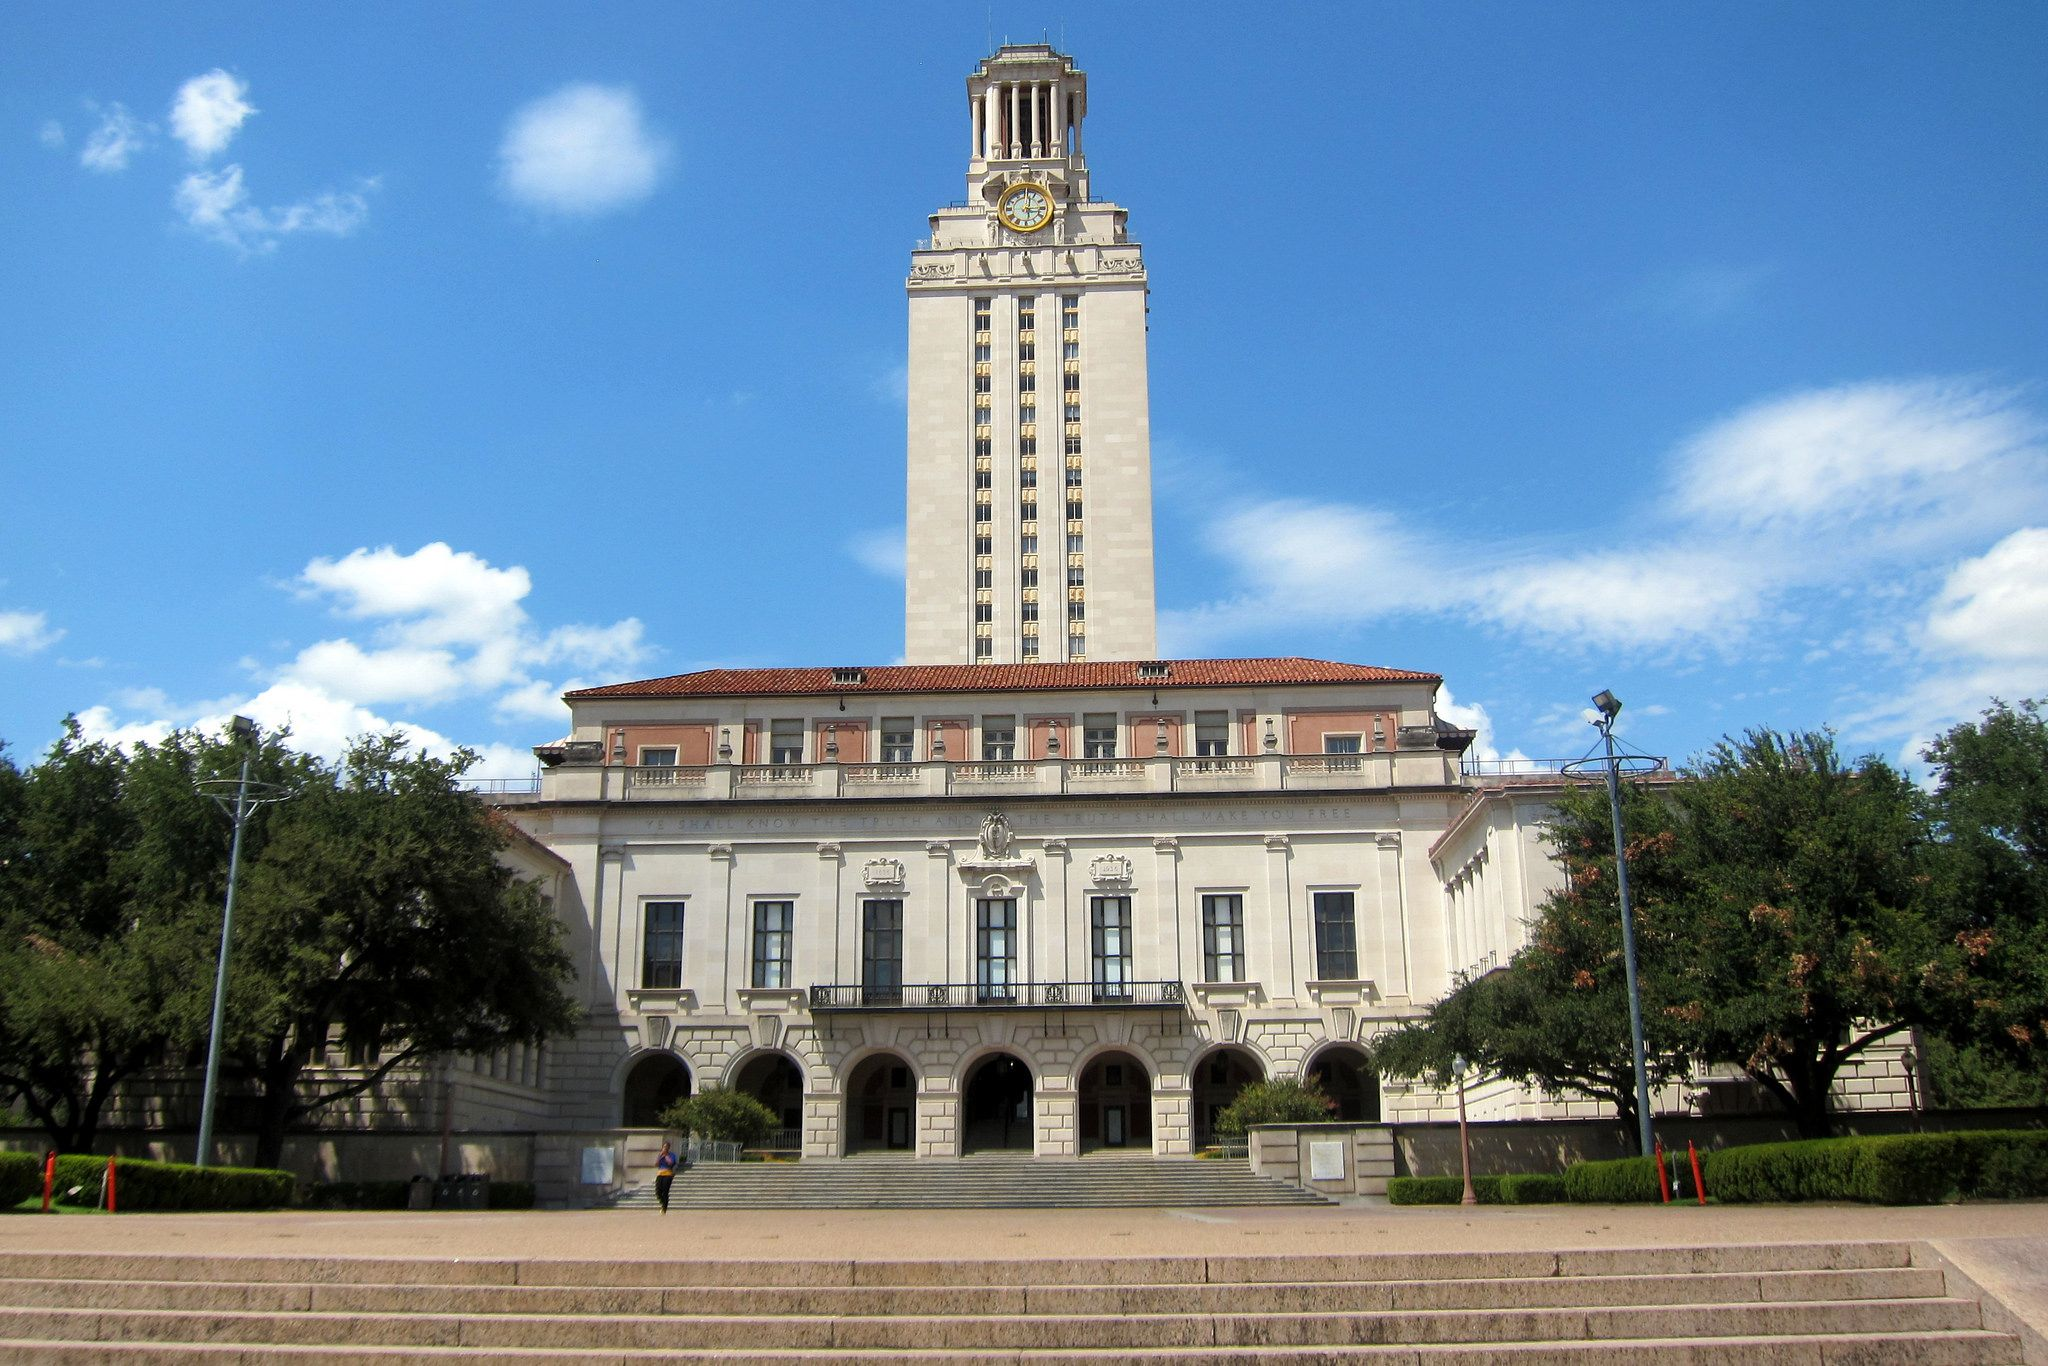 15 Percent of Female Students at the University of Texas Say They Were Raped While Enrolled